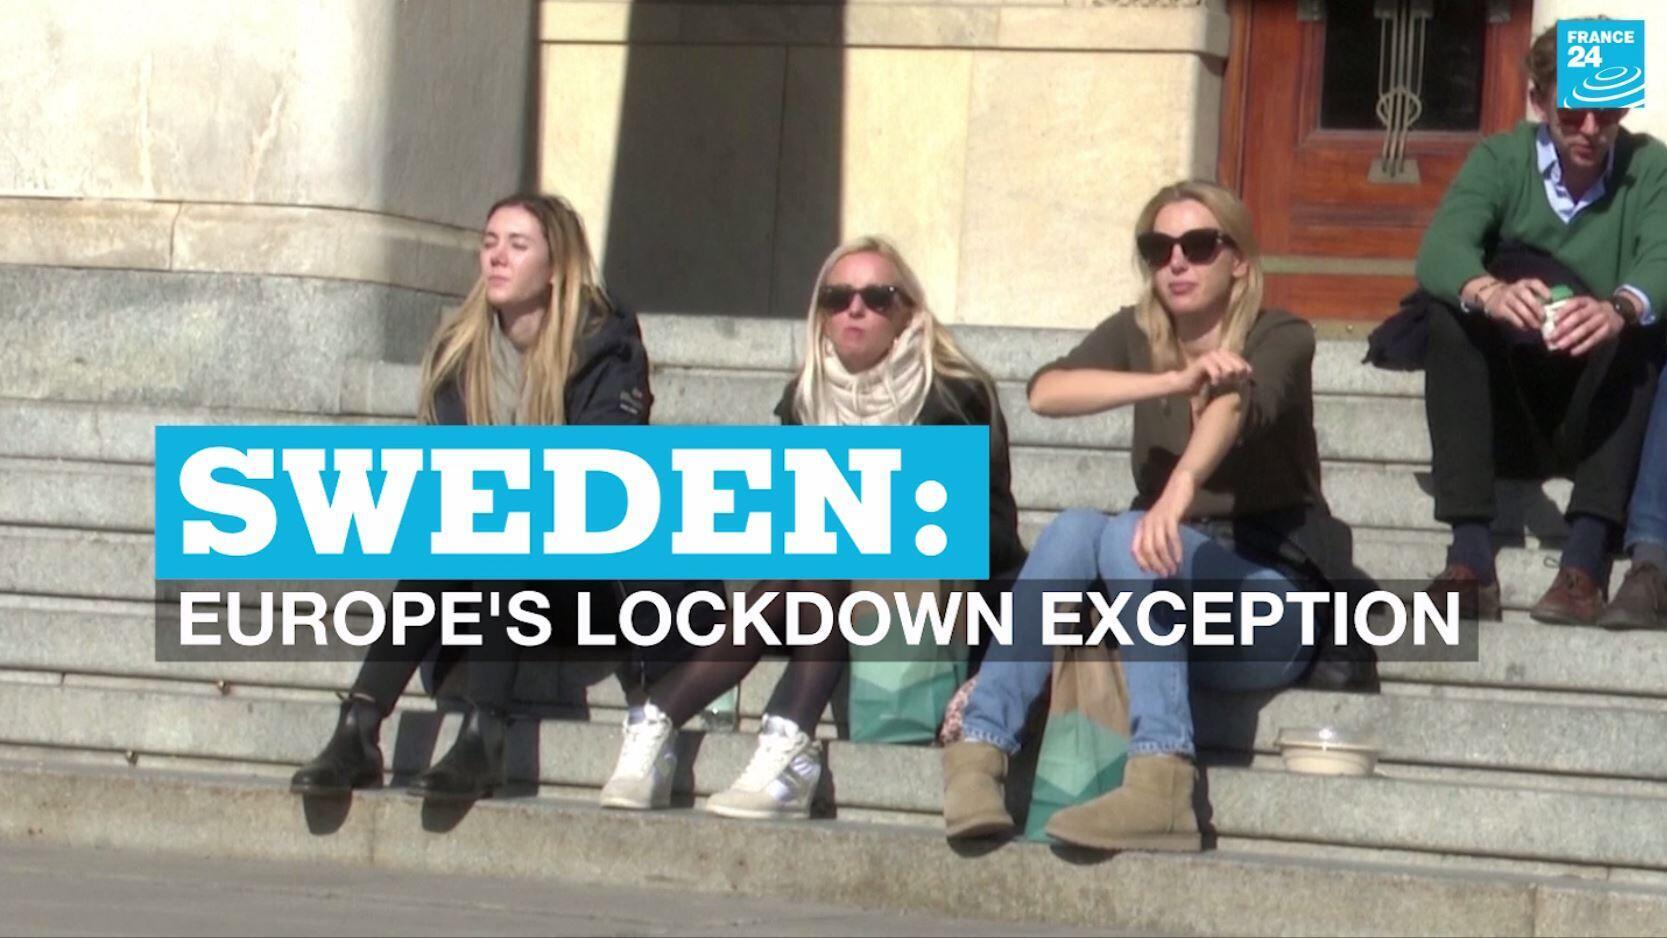 Sweden is one of the few European countries not in full lockdown amid the coronavirus pandemic.